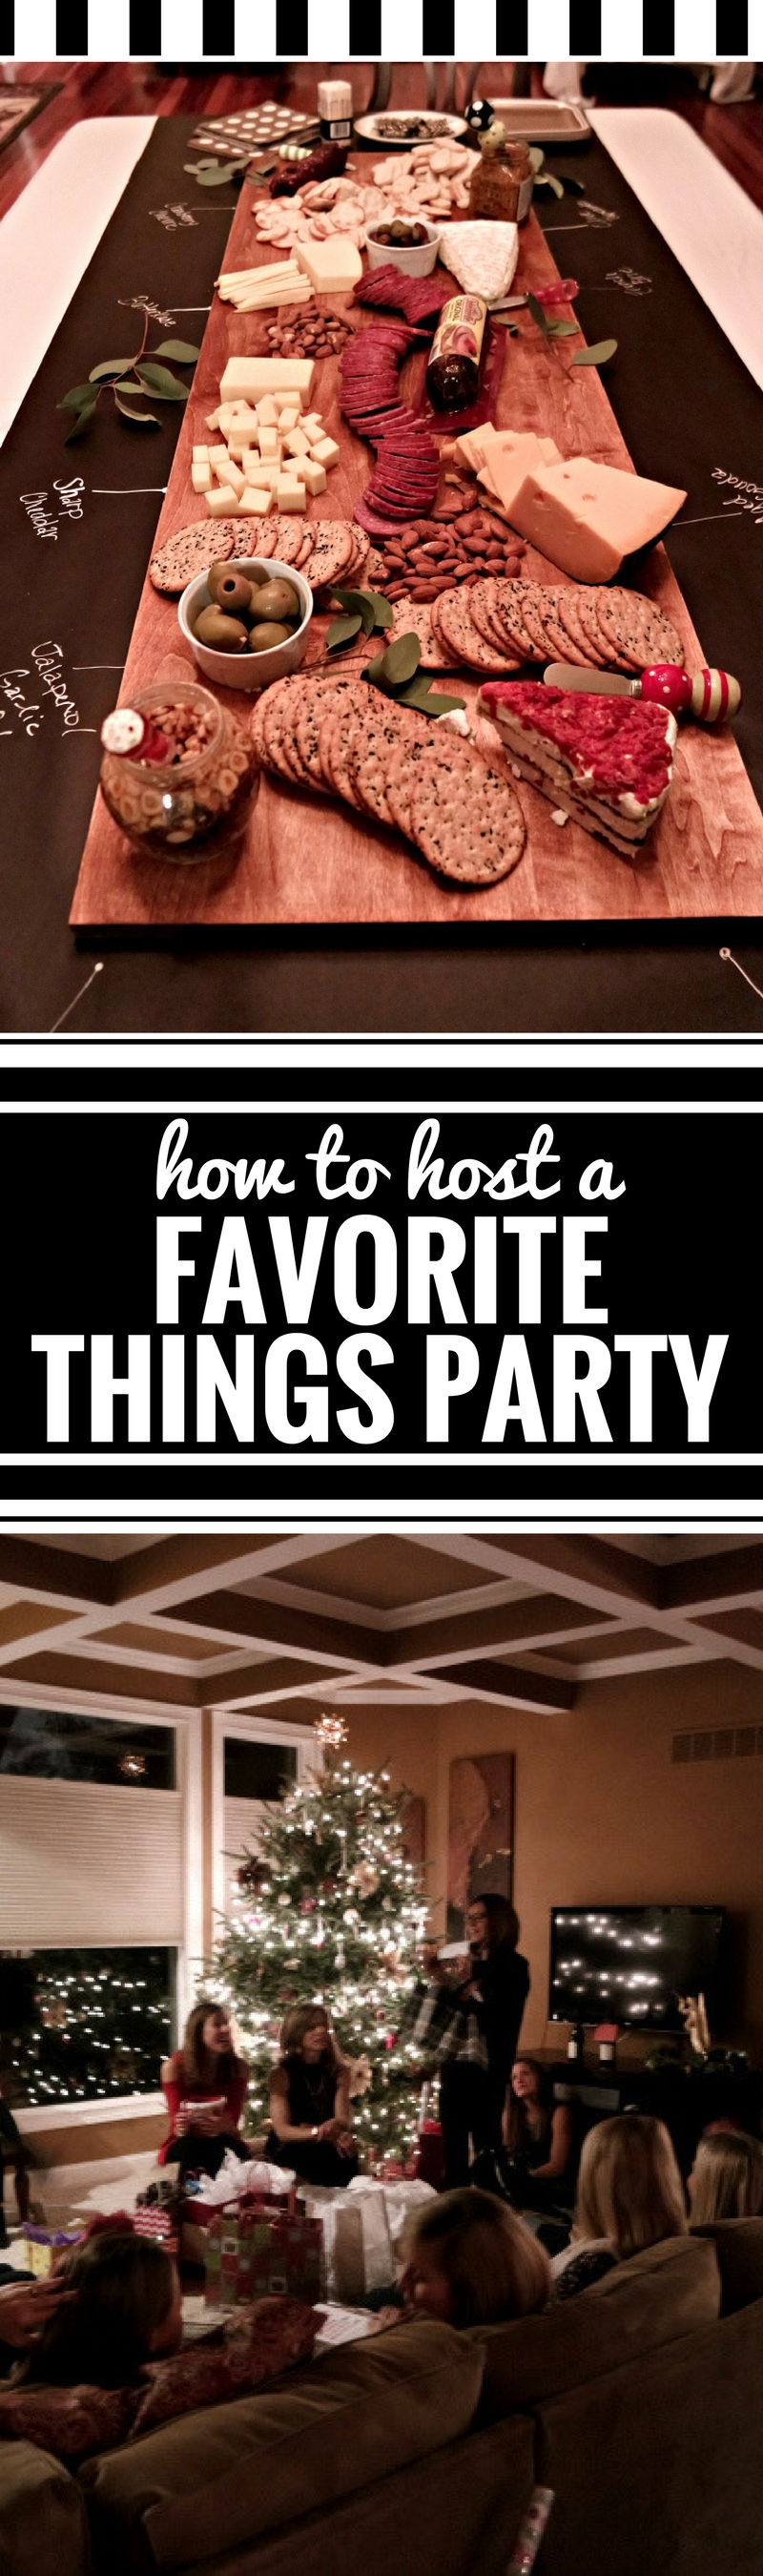 how-to-host-a-favorite-things-party-pin